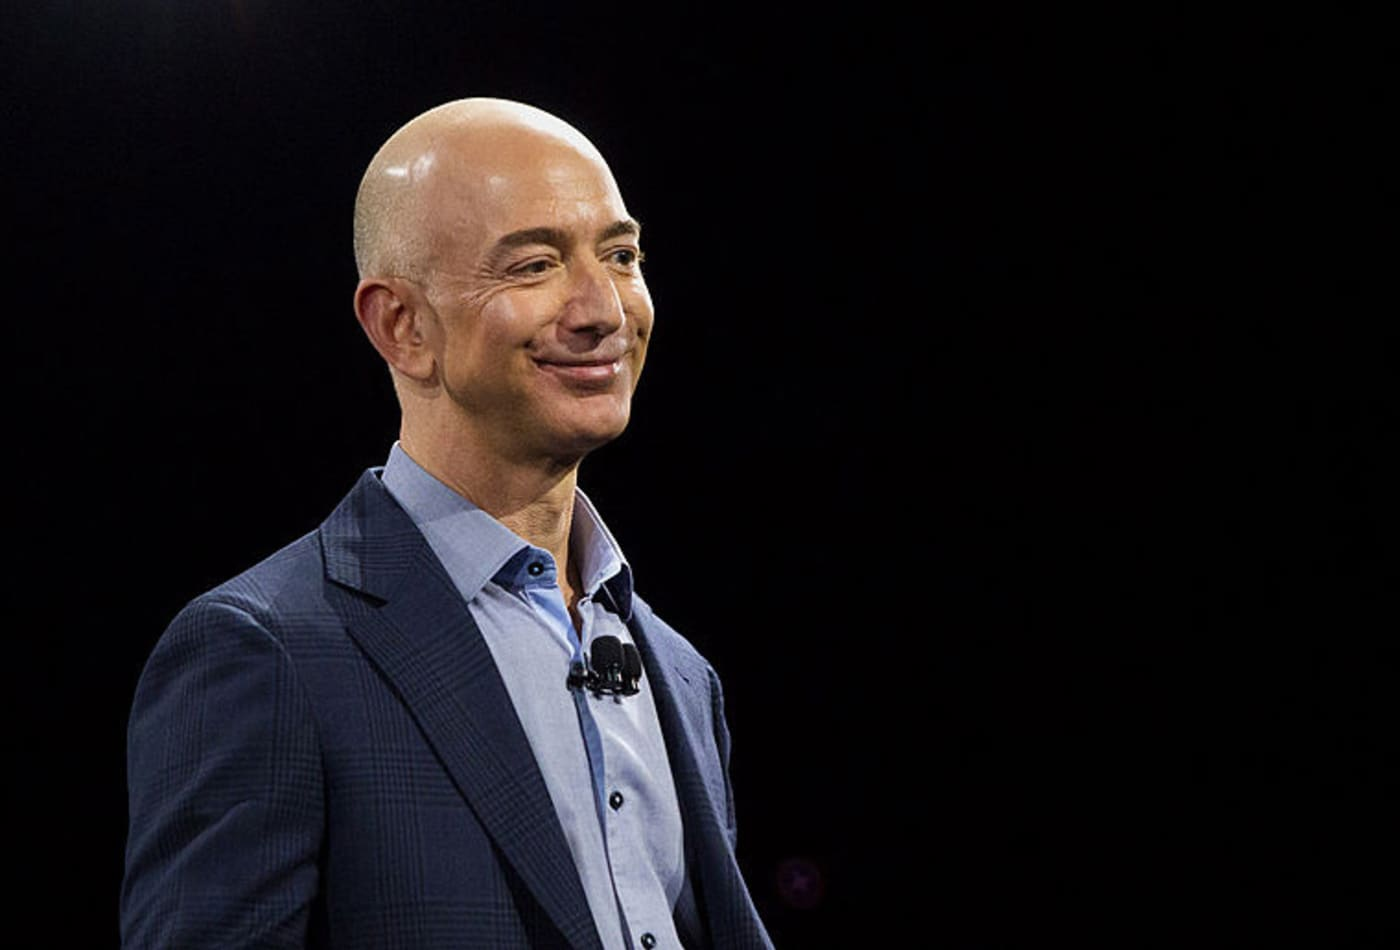 Why Jeff Bezos says he succeeded in life